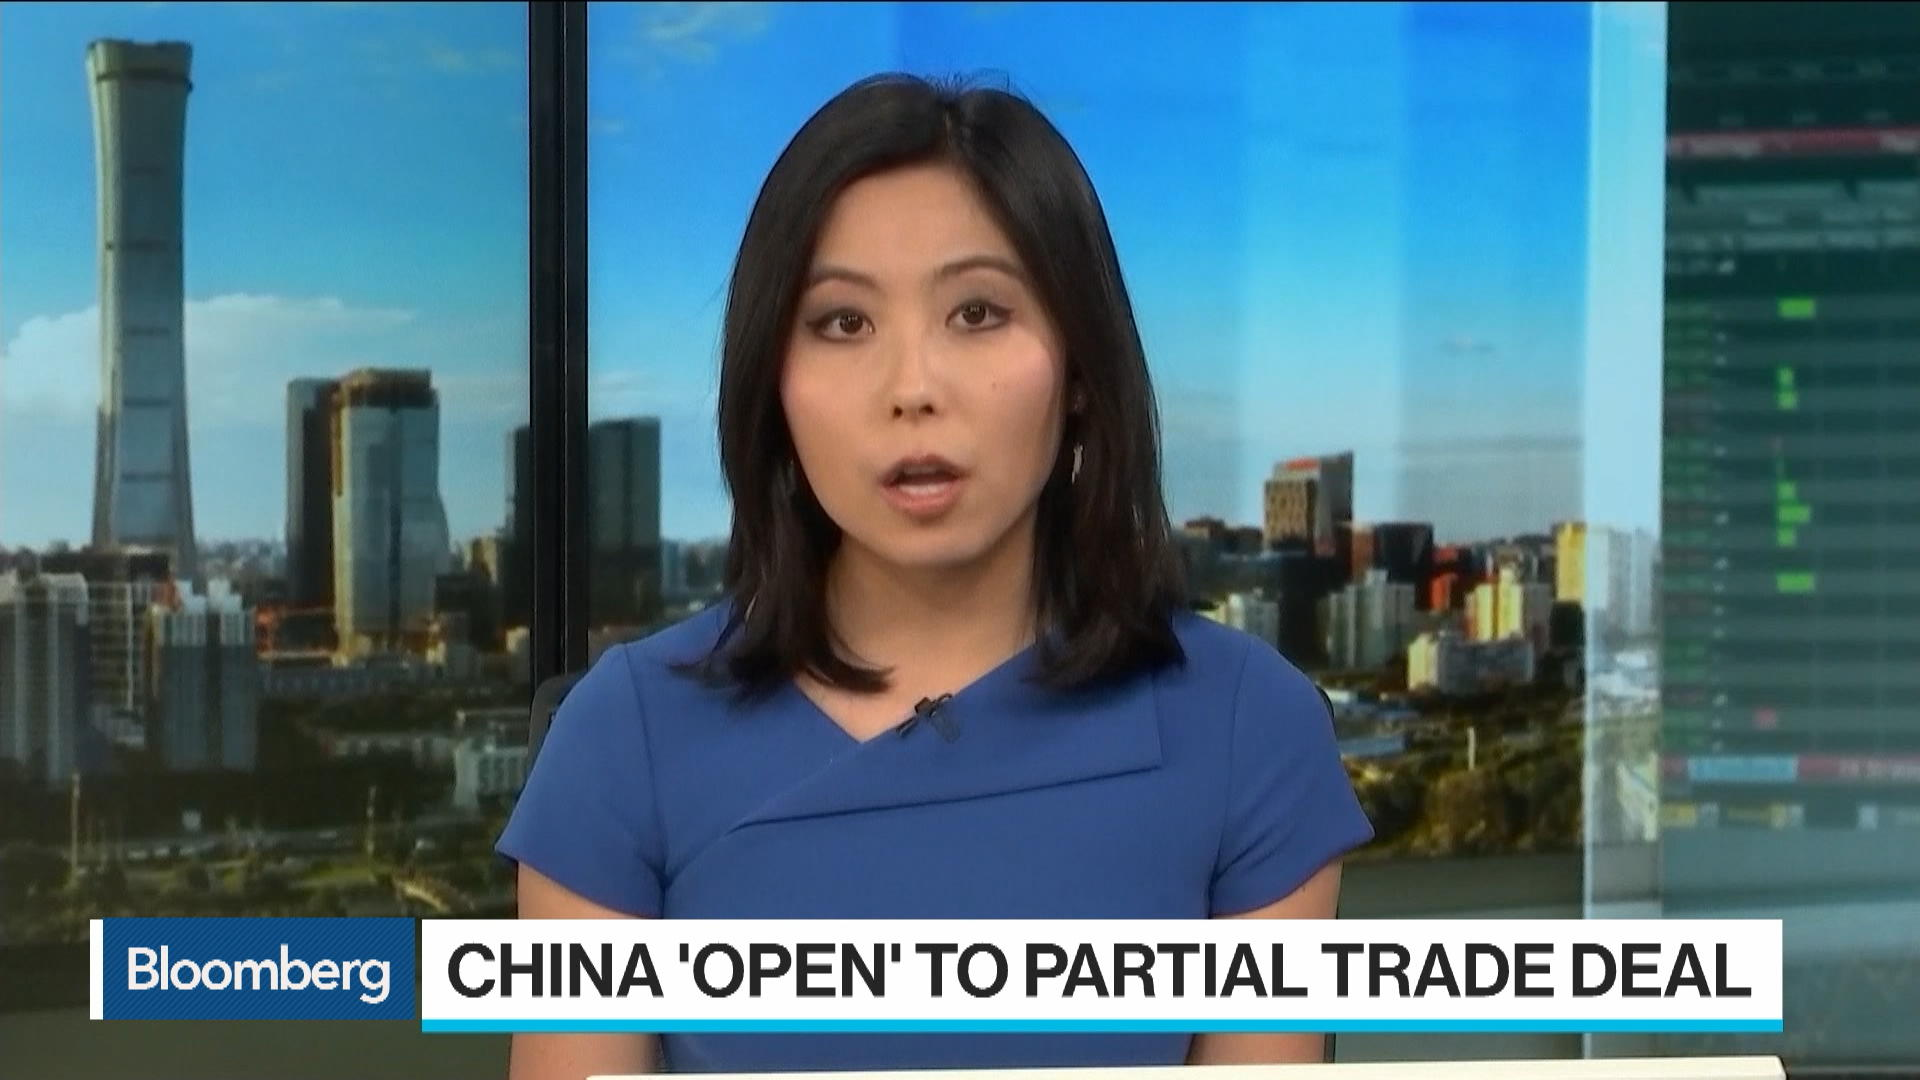 China Open to Small Trade Deal